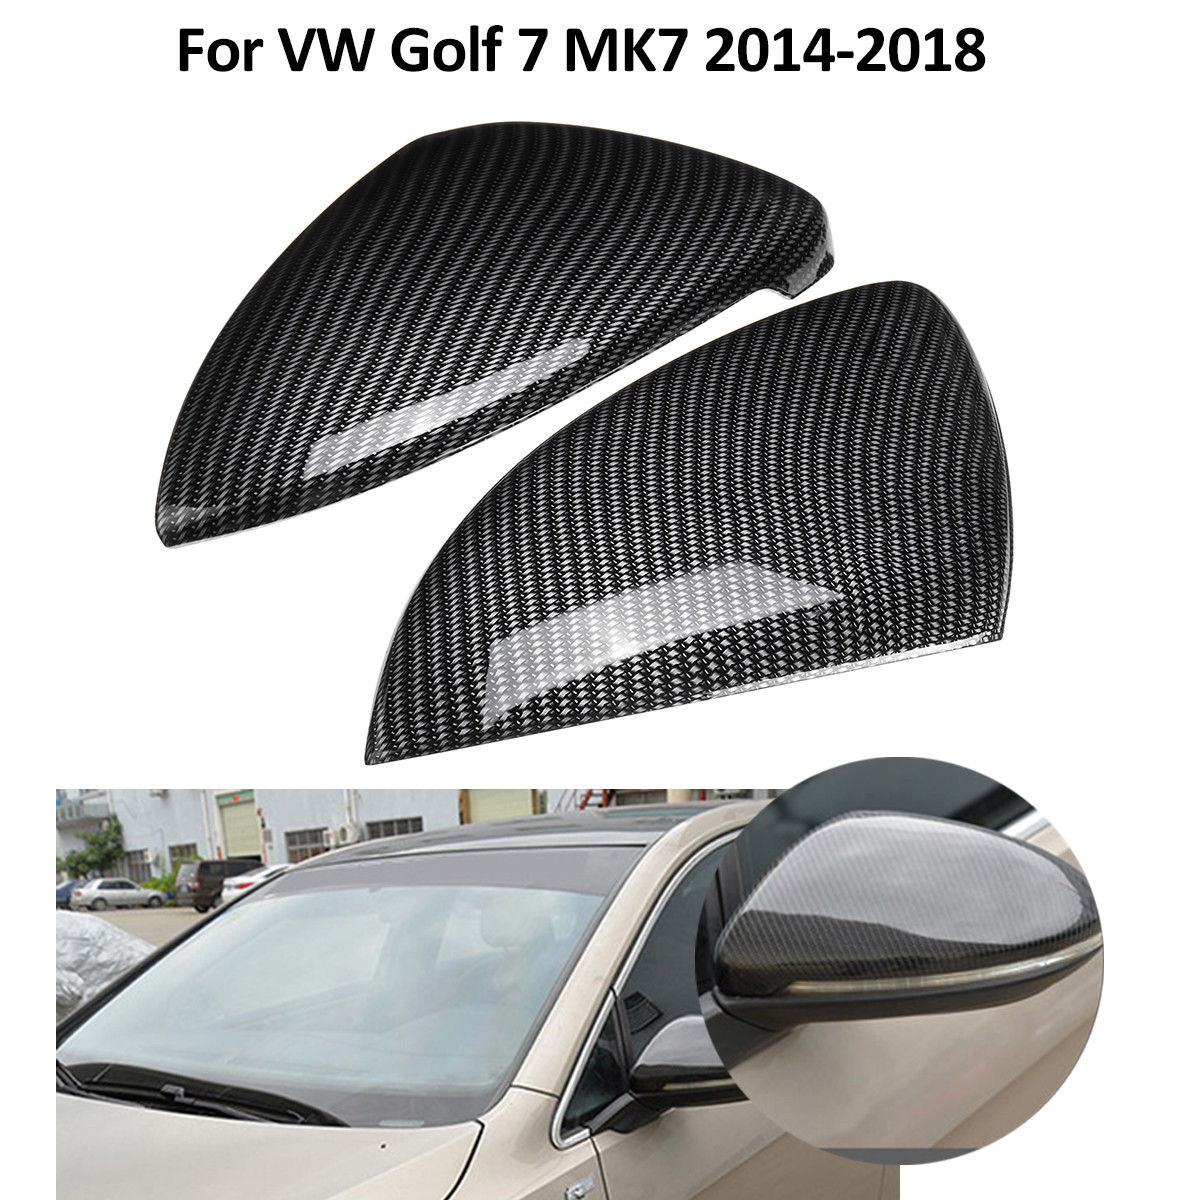 2 pcs Car Side Mirror Cover Trim FIt for VW Volkswagen Golf 7 MK7 2014 2015 2016 2017 2018